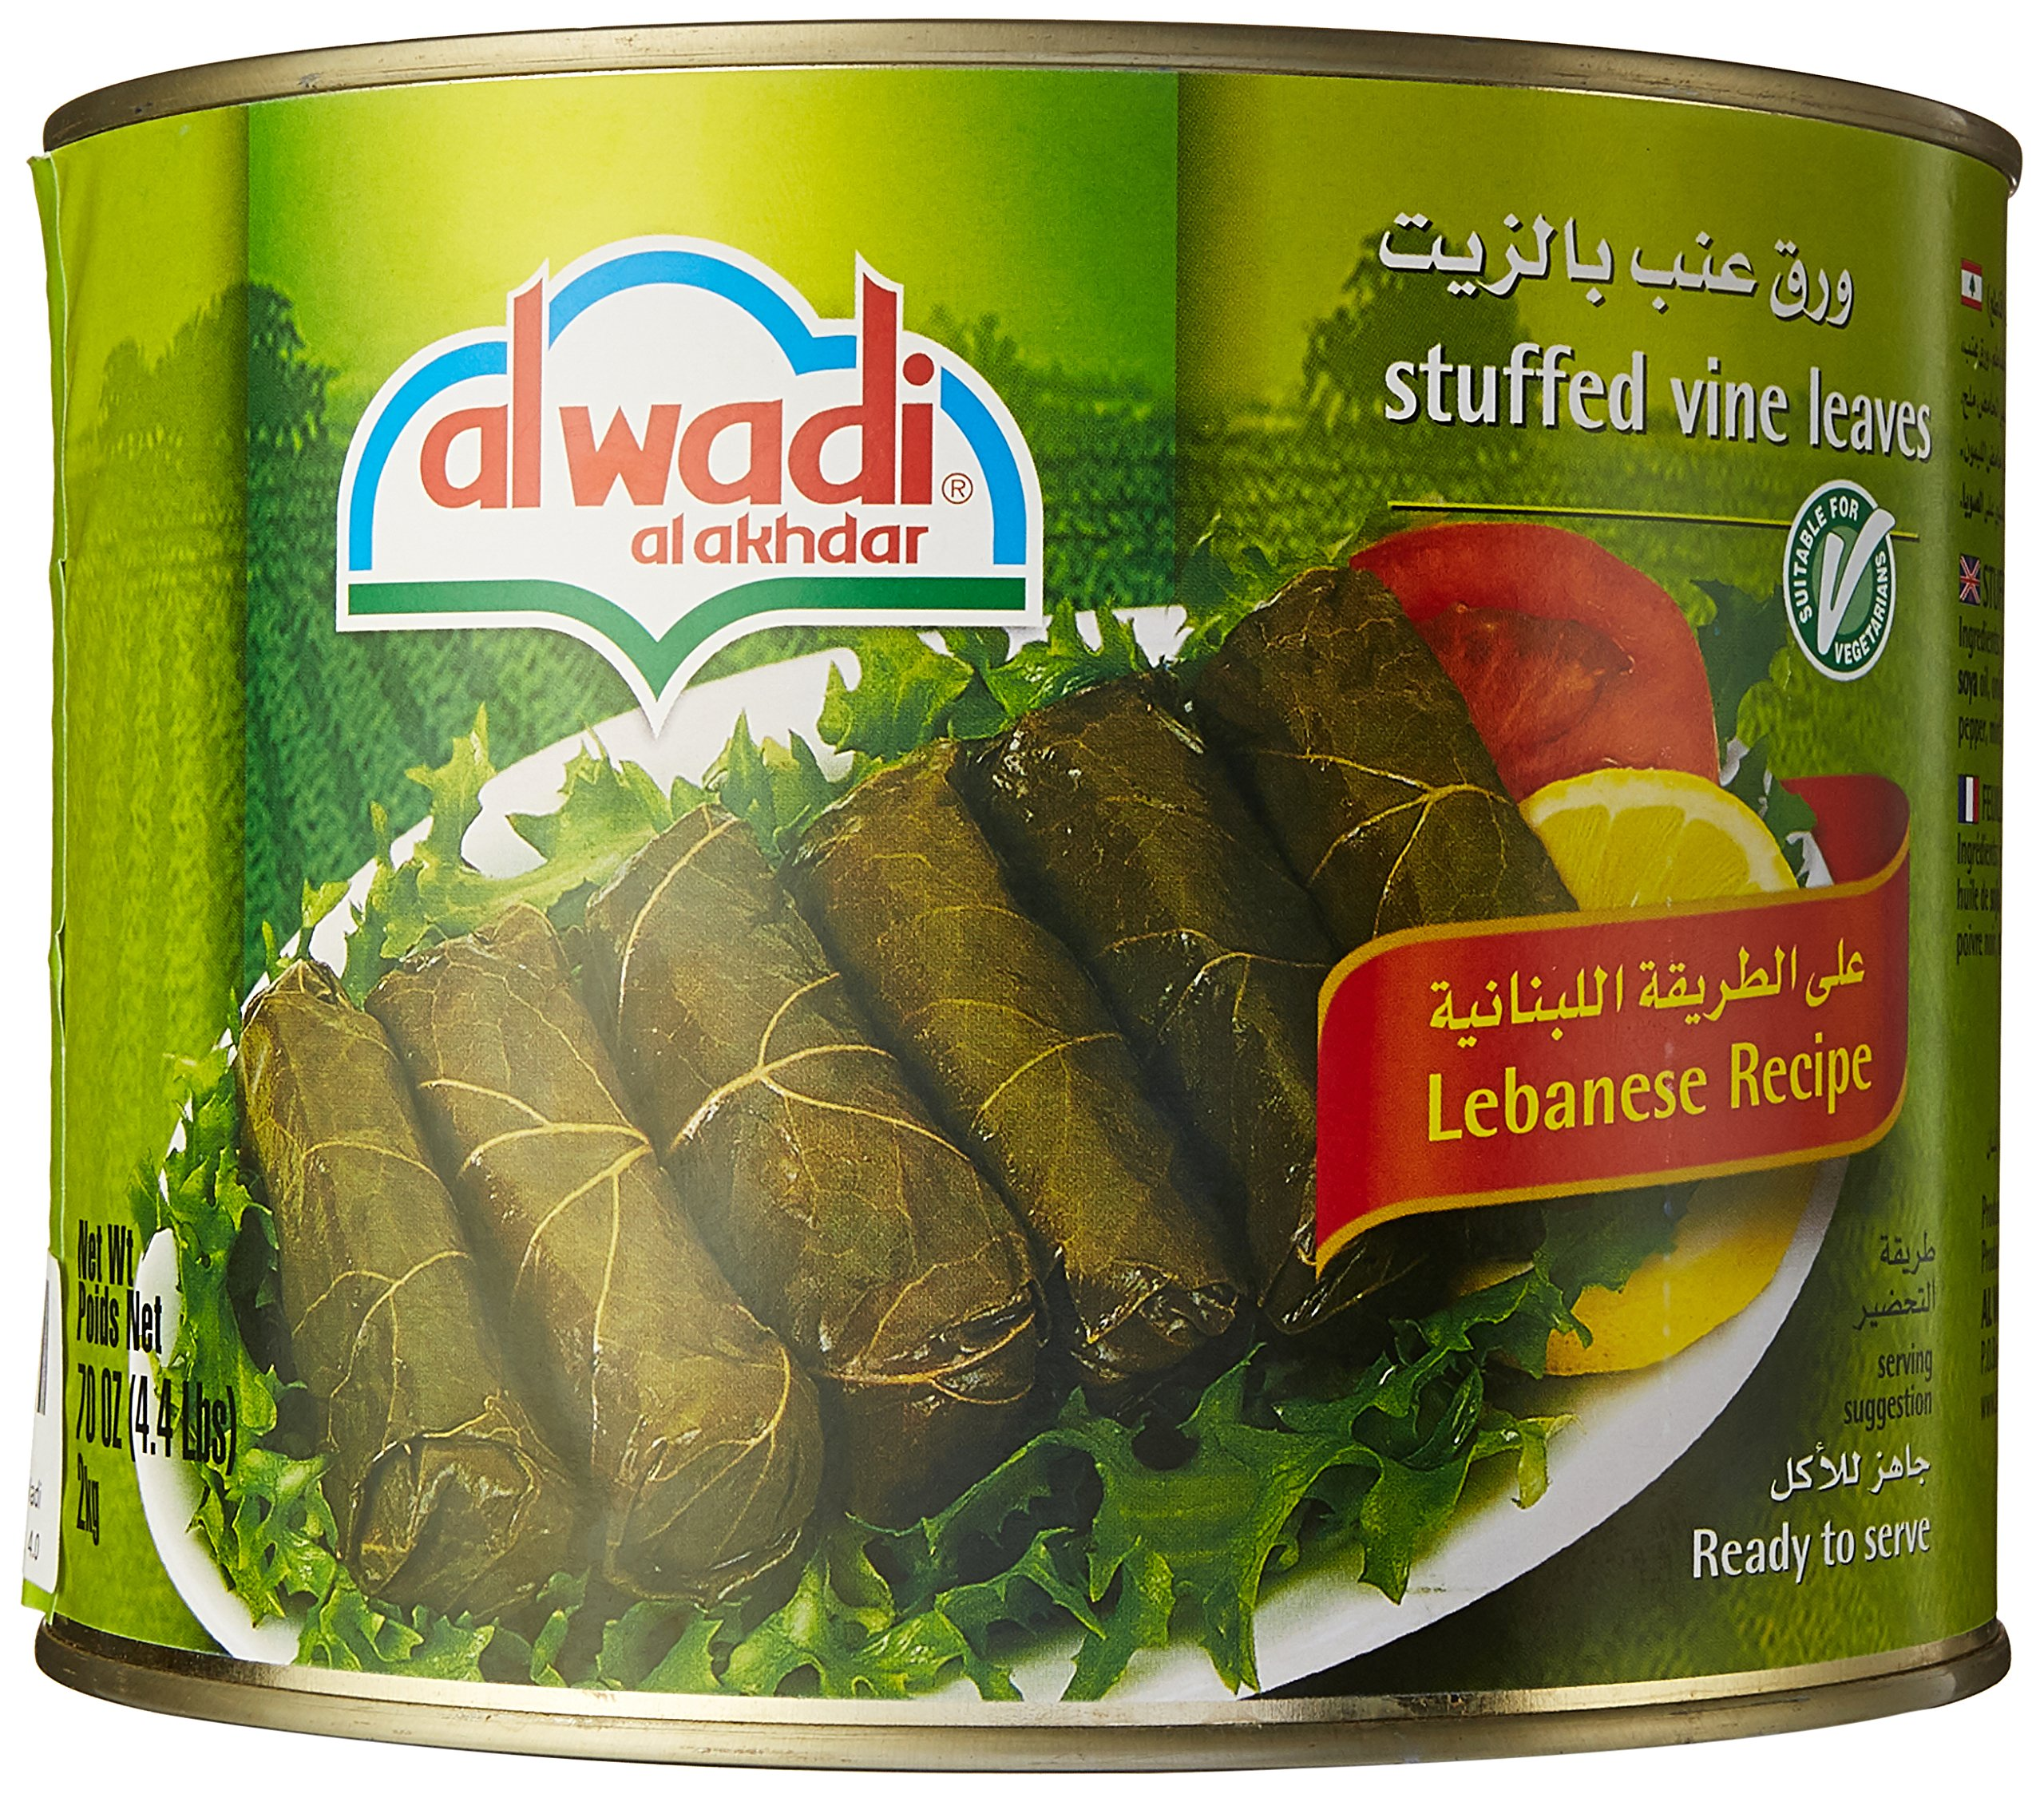 al Wadi alakhdar Gourmet Stuffed Vine Leaves, 4.4 Lbs by alwadi alakhdar